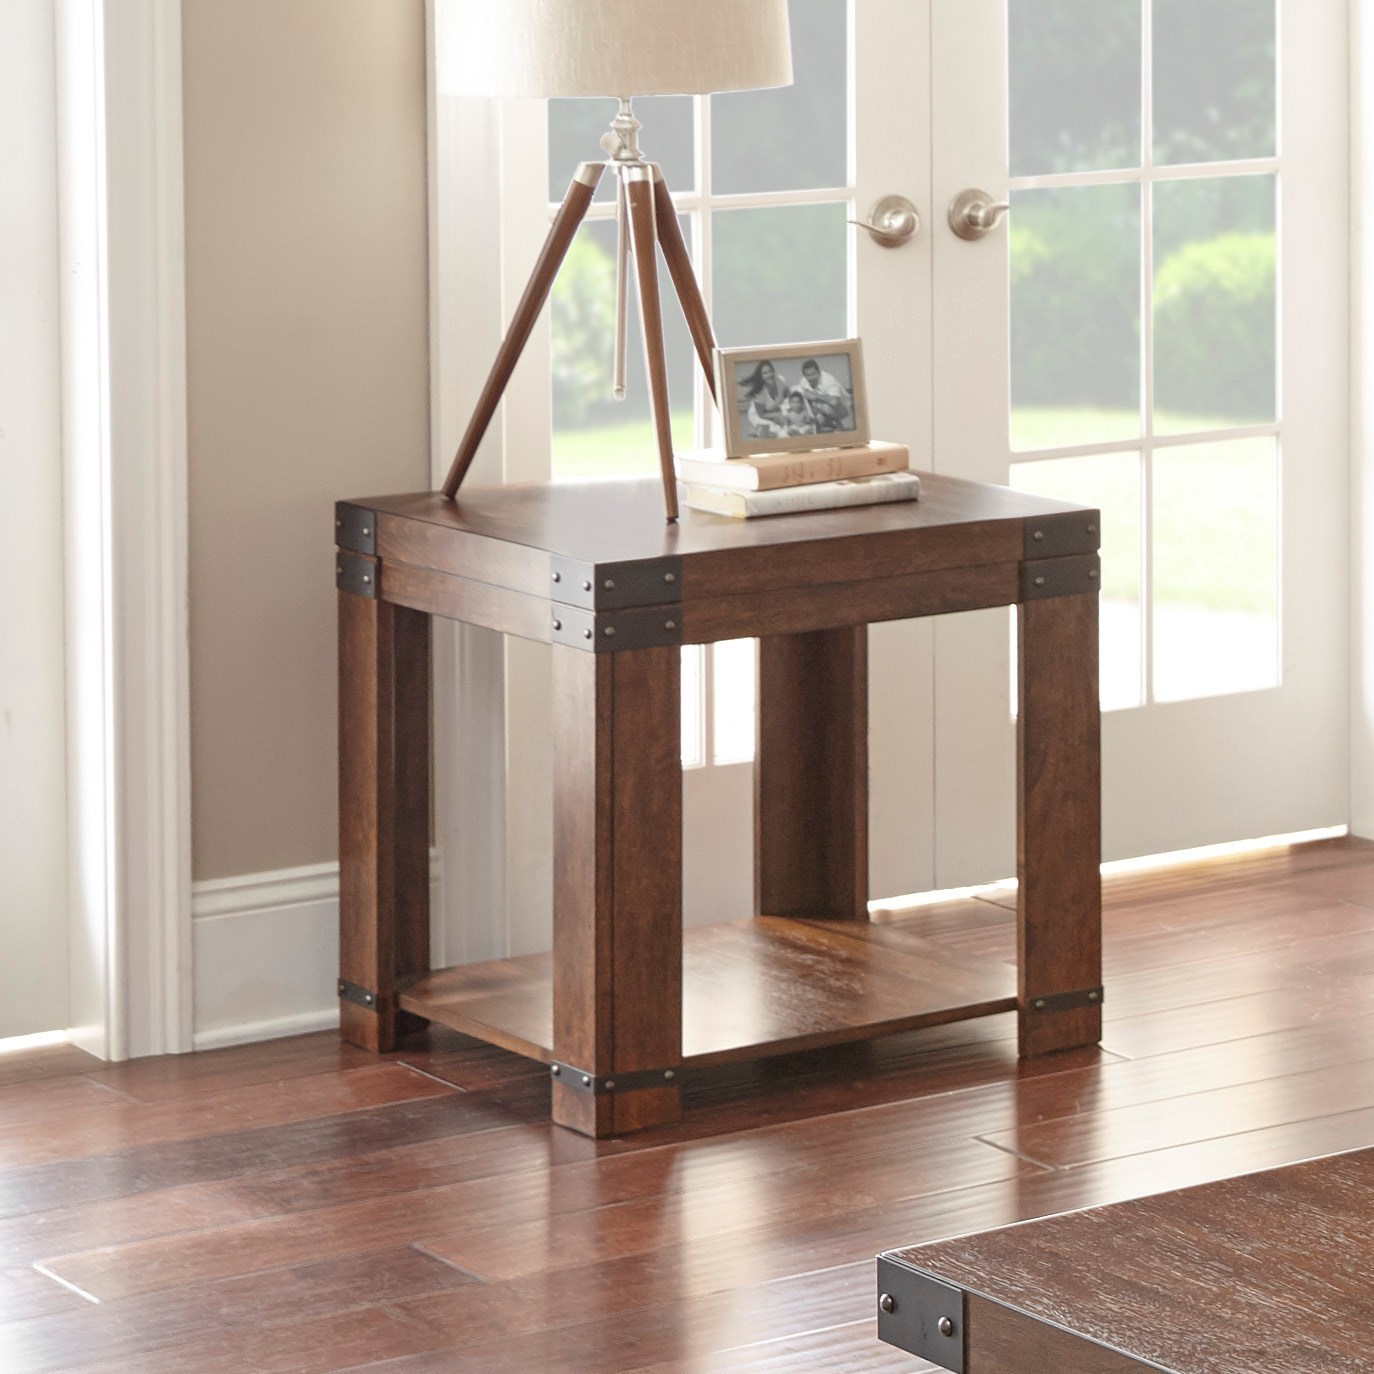 Arusha End Table by Vendor 3985 at Becker Furniture